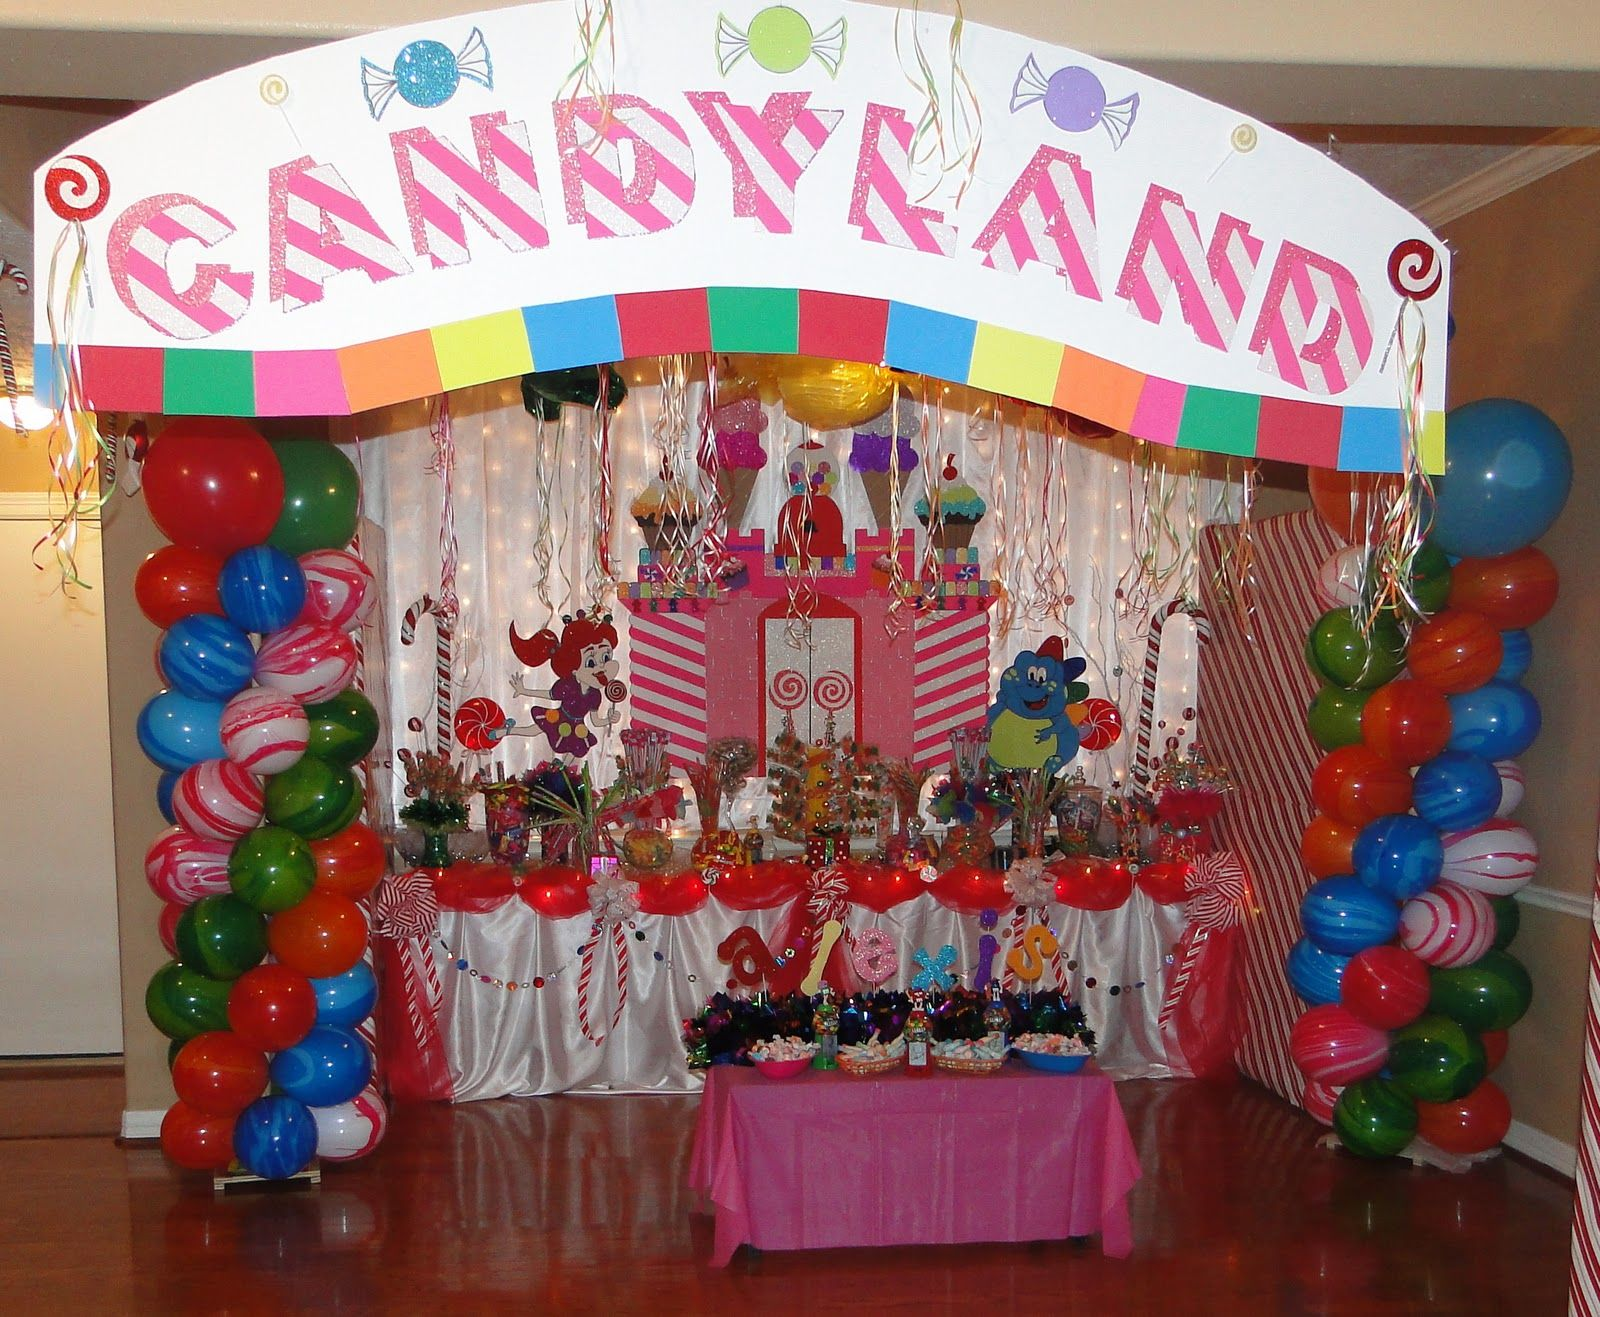 Candyland Party Ideas | ... Creations Designed by Maria: Candyland ...